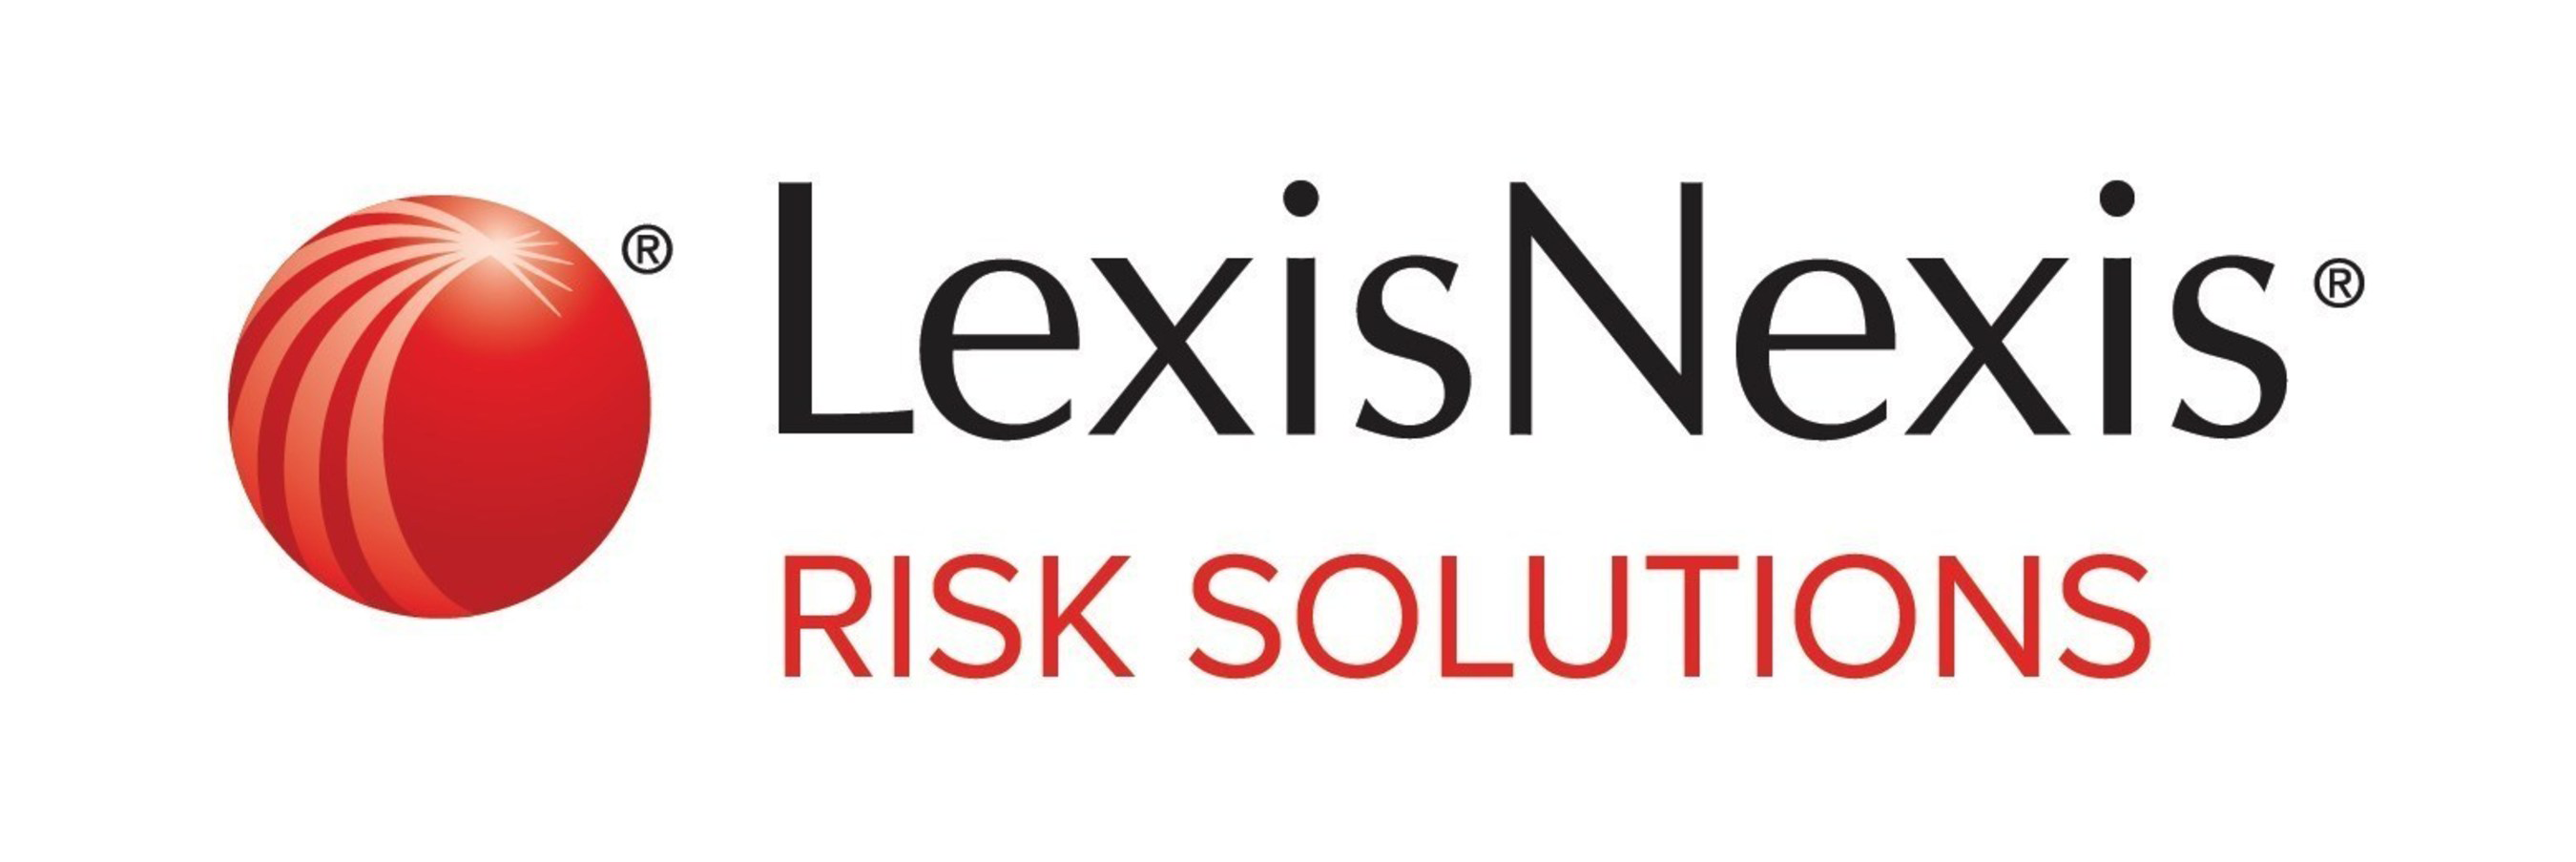 Lexis Nexis Risk Solutions Logo